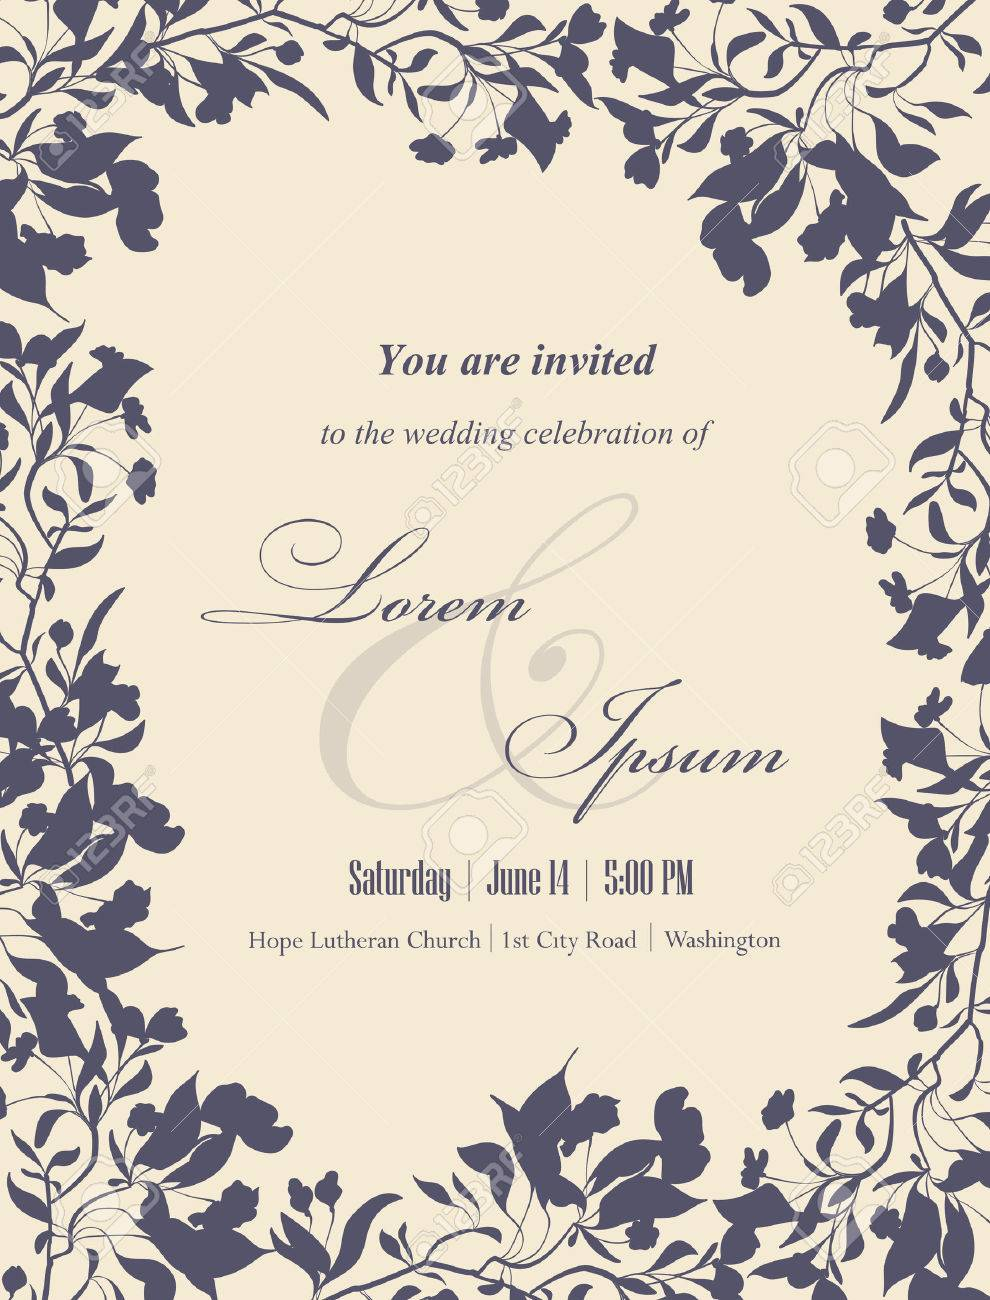 Wedding Invitation Cards With Floral Elements. Floral Frame And ...